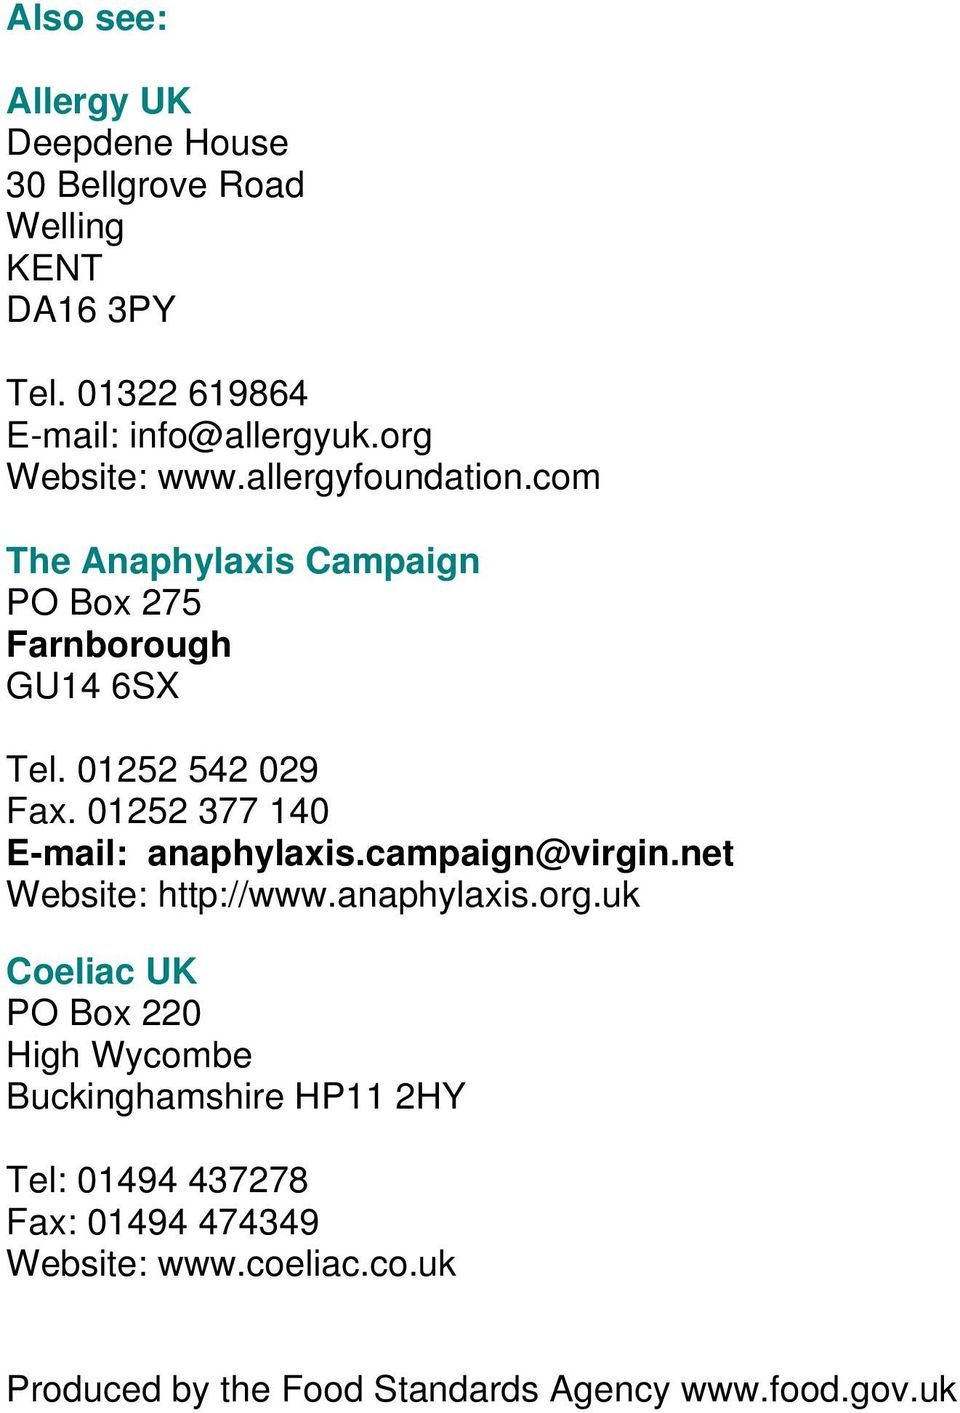 01252 377 140 E-mail: anaphylaxis.campaign@virgin.net Website: http://www.anaphylaxis.org.